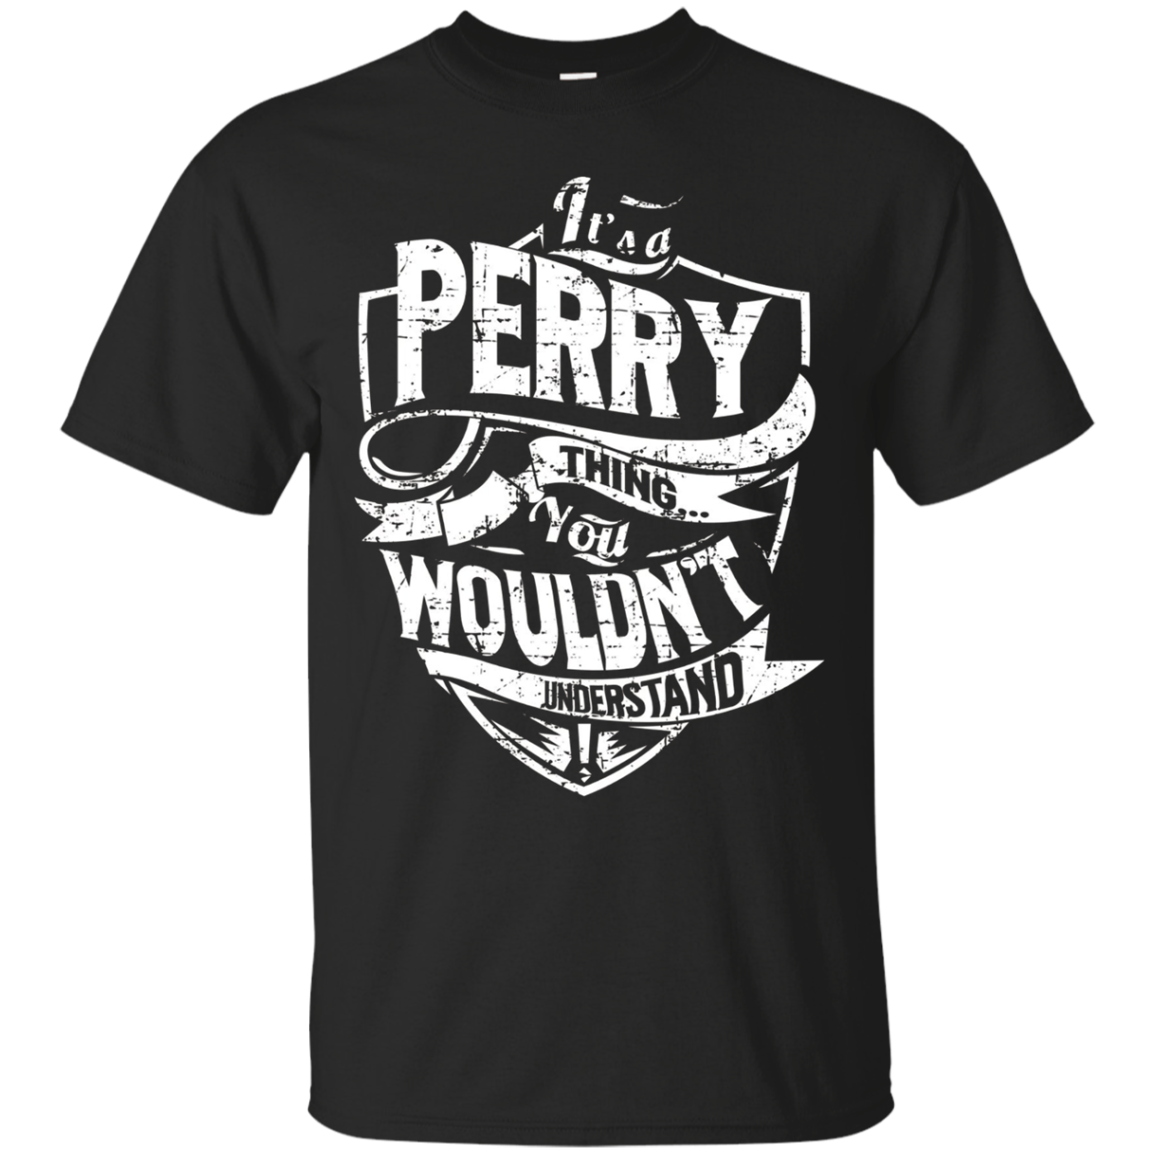 It's A Perry Thing You Wouldn't Understand T-Shirt